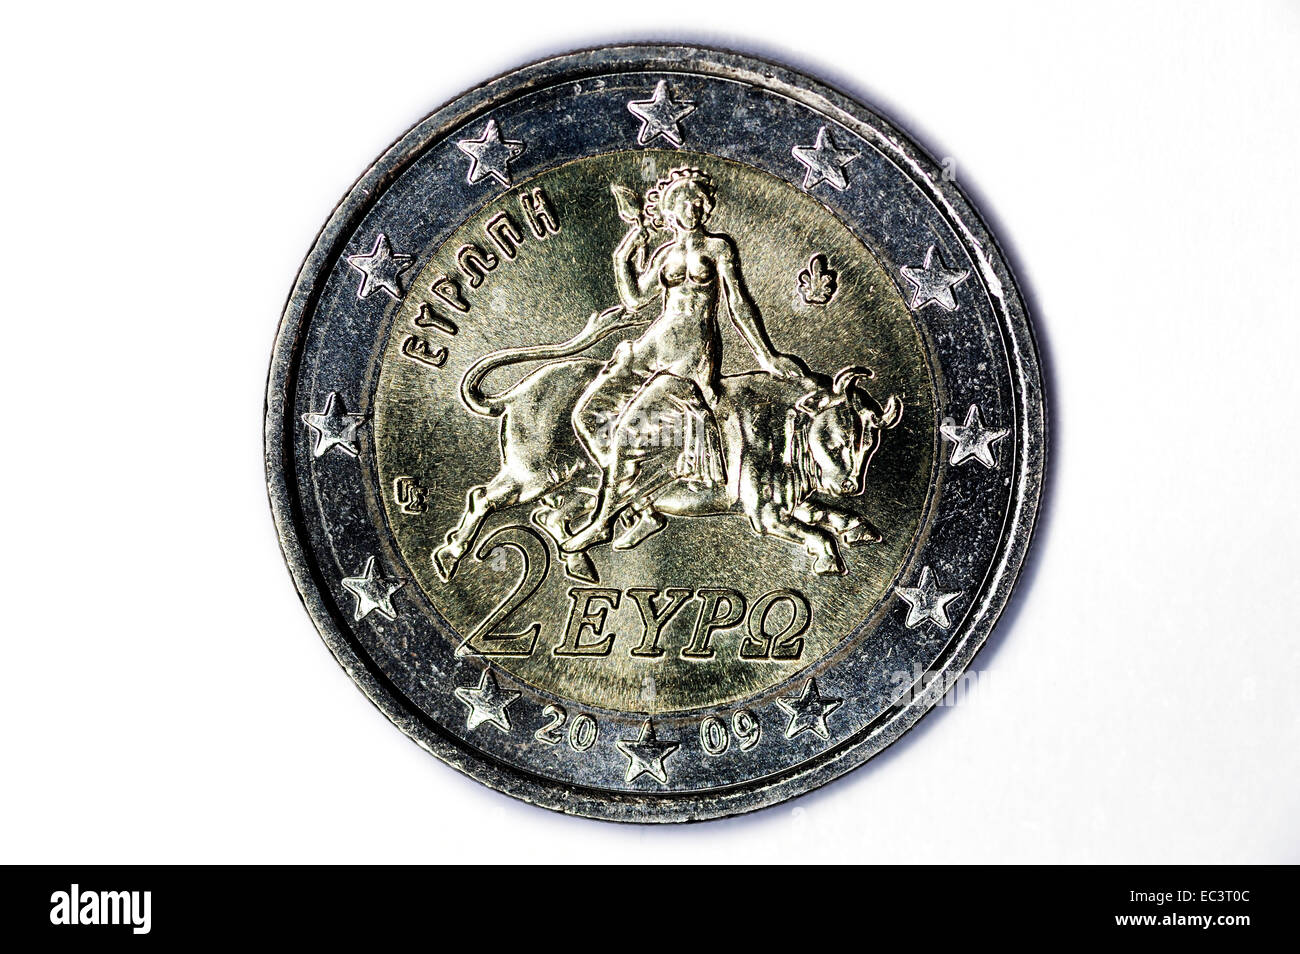 Greek two euro coin, debt crisis - Stock Image